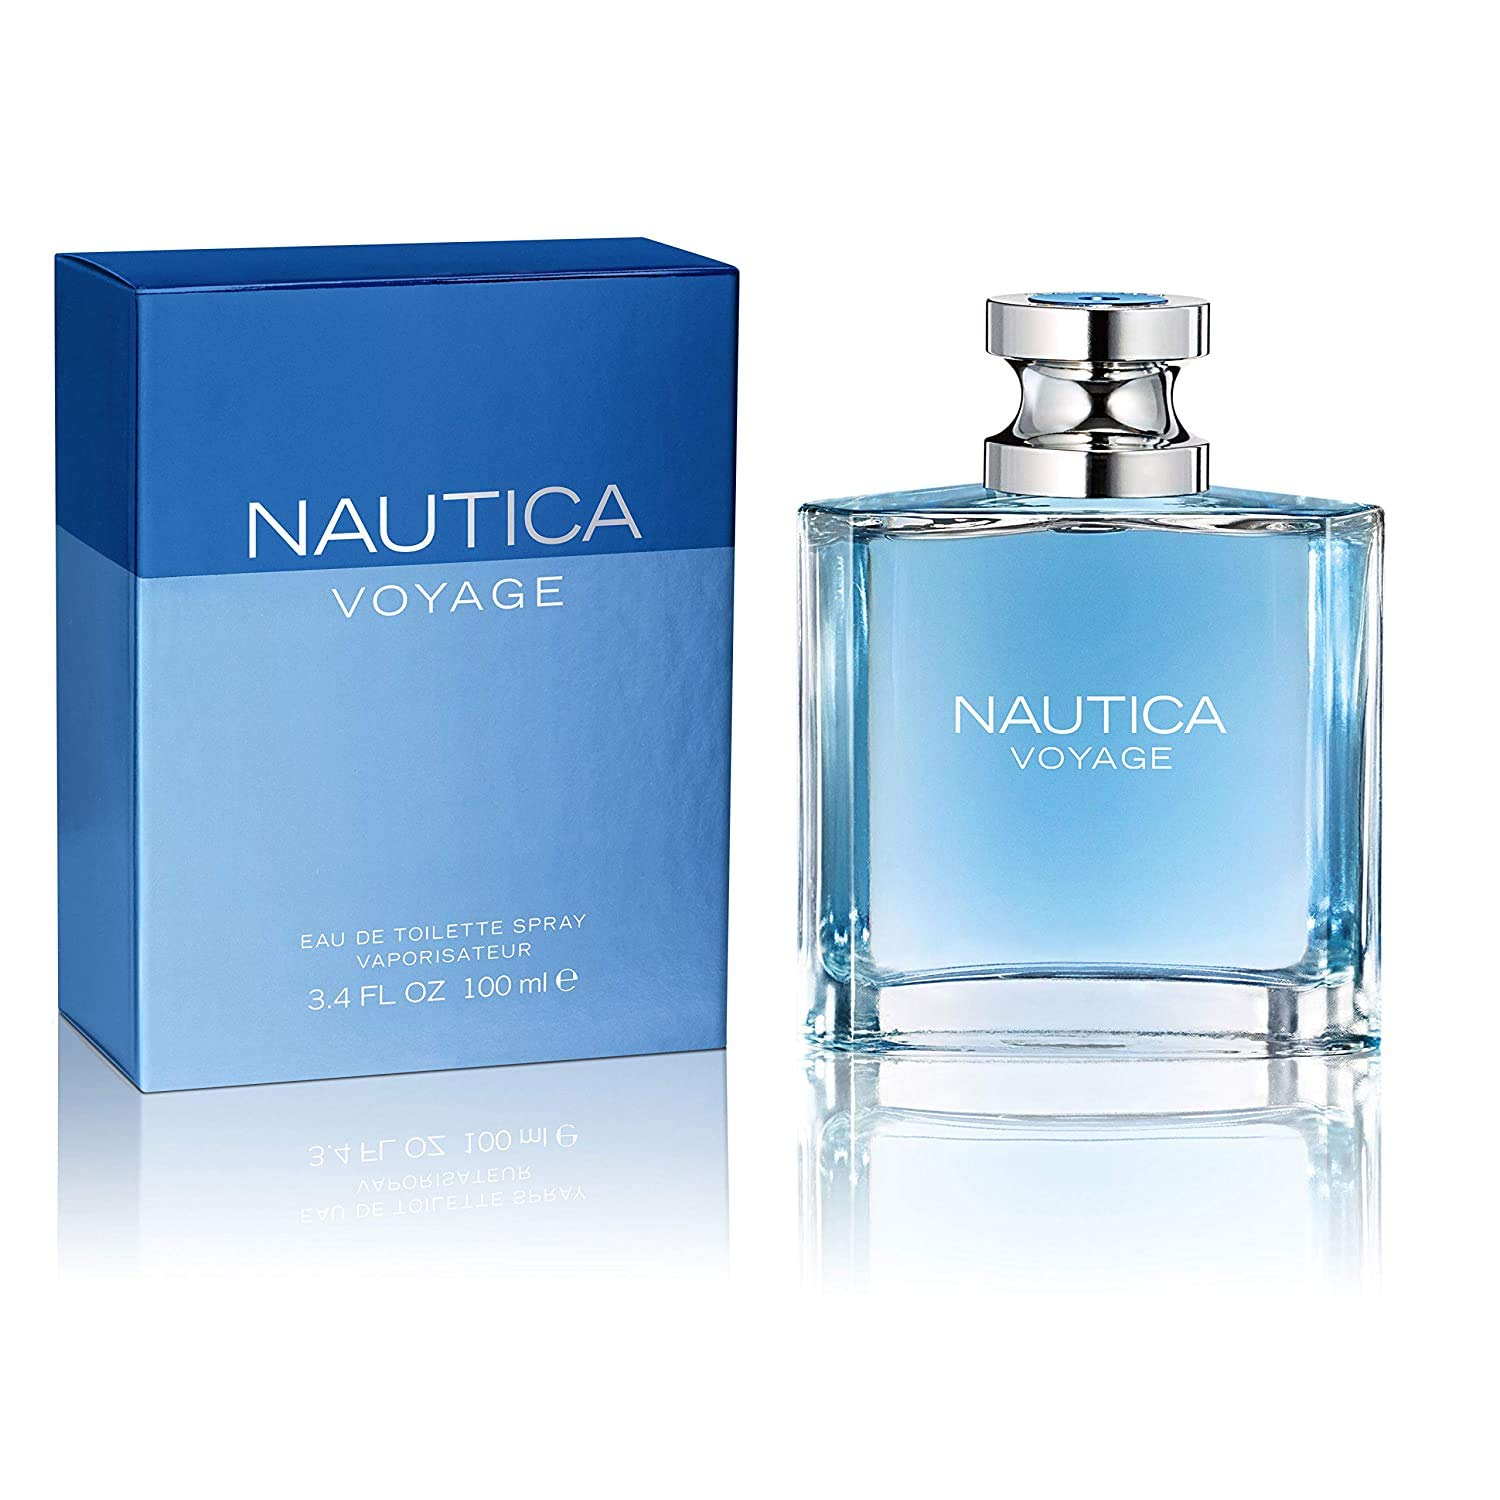 Top 12 Best Perfume For Teens (2020 Reviews & Buying Guide) 10